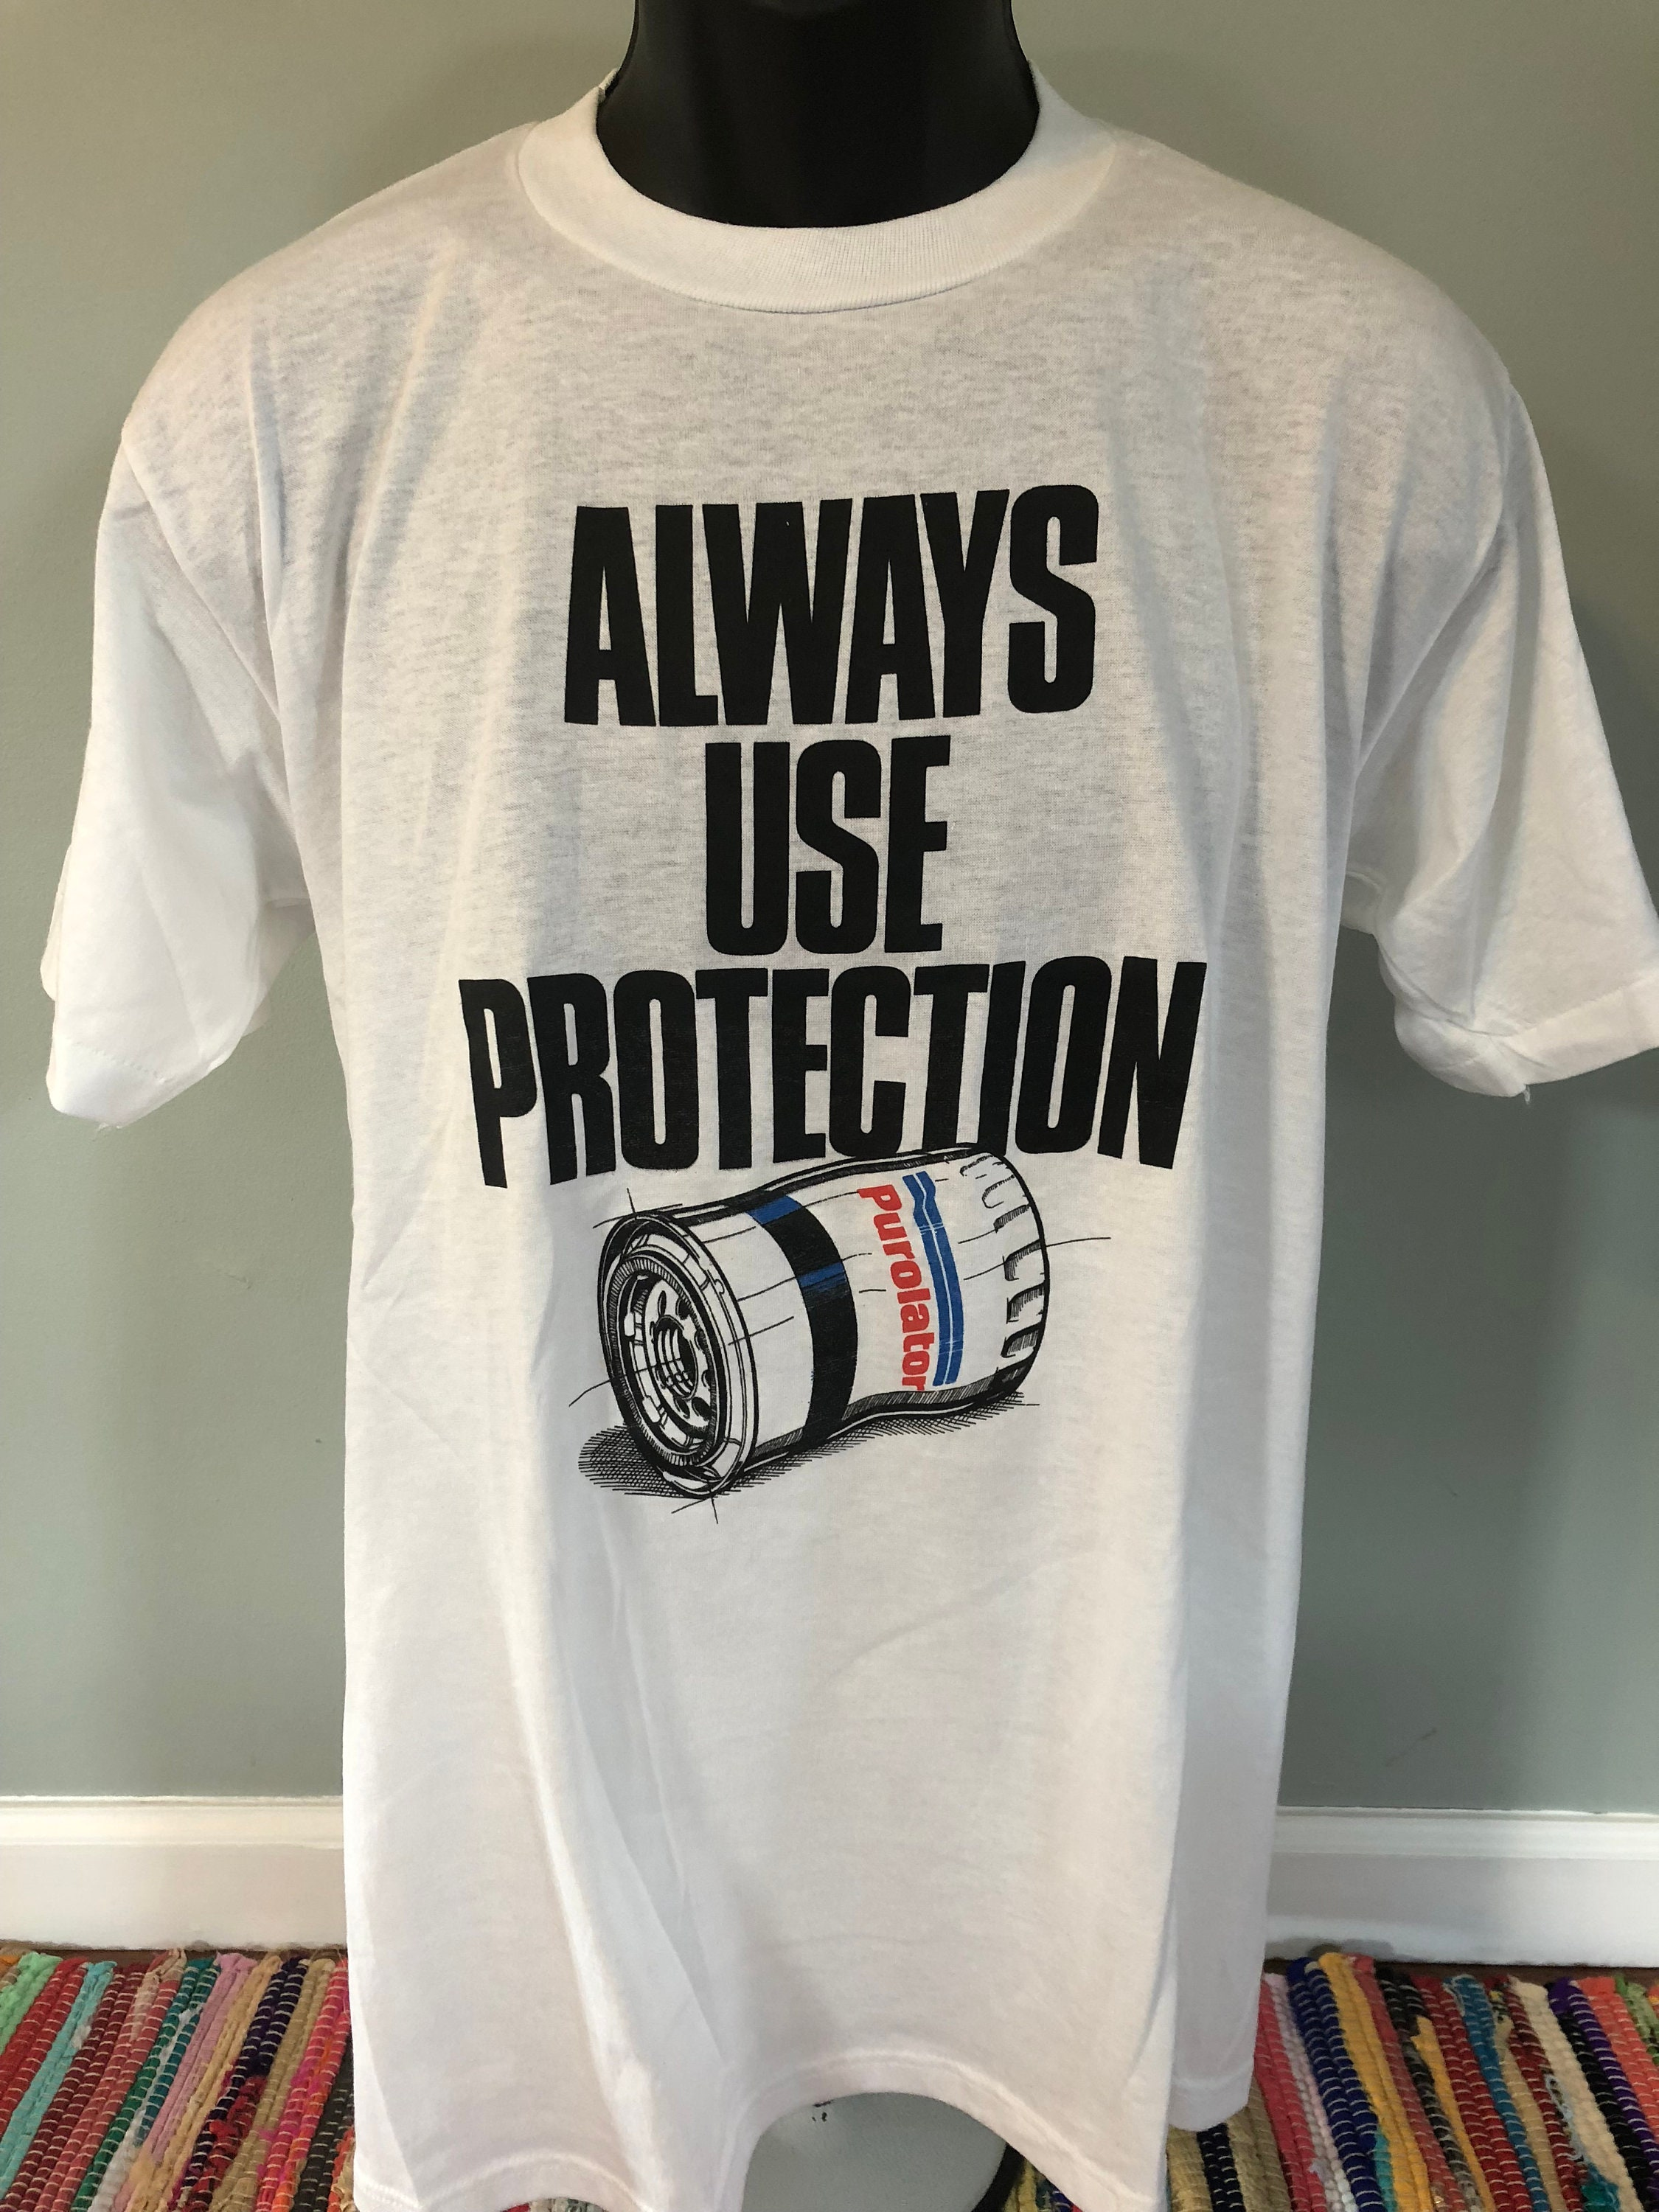 80 s toujours utiliser Protection Swingster chemise chemise chemise Vintage Tee Purolator huile Muscle Car Nascar essence formule course Indy 500 Chevrolet Mustang Dodge XL 0ac694